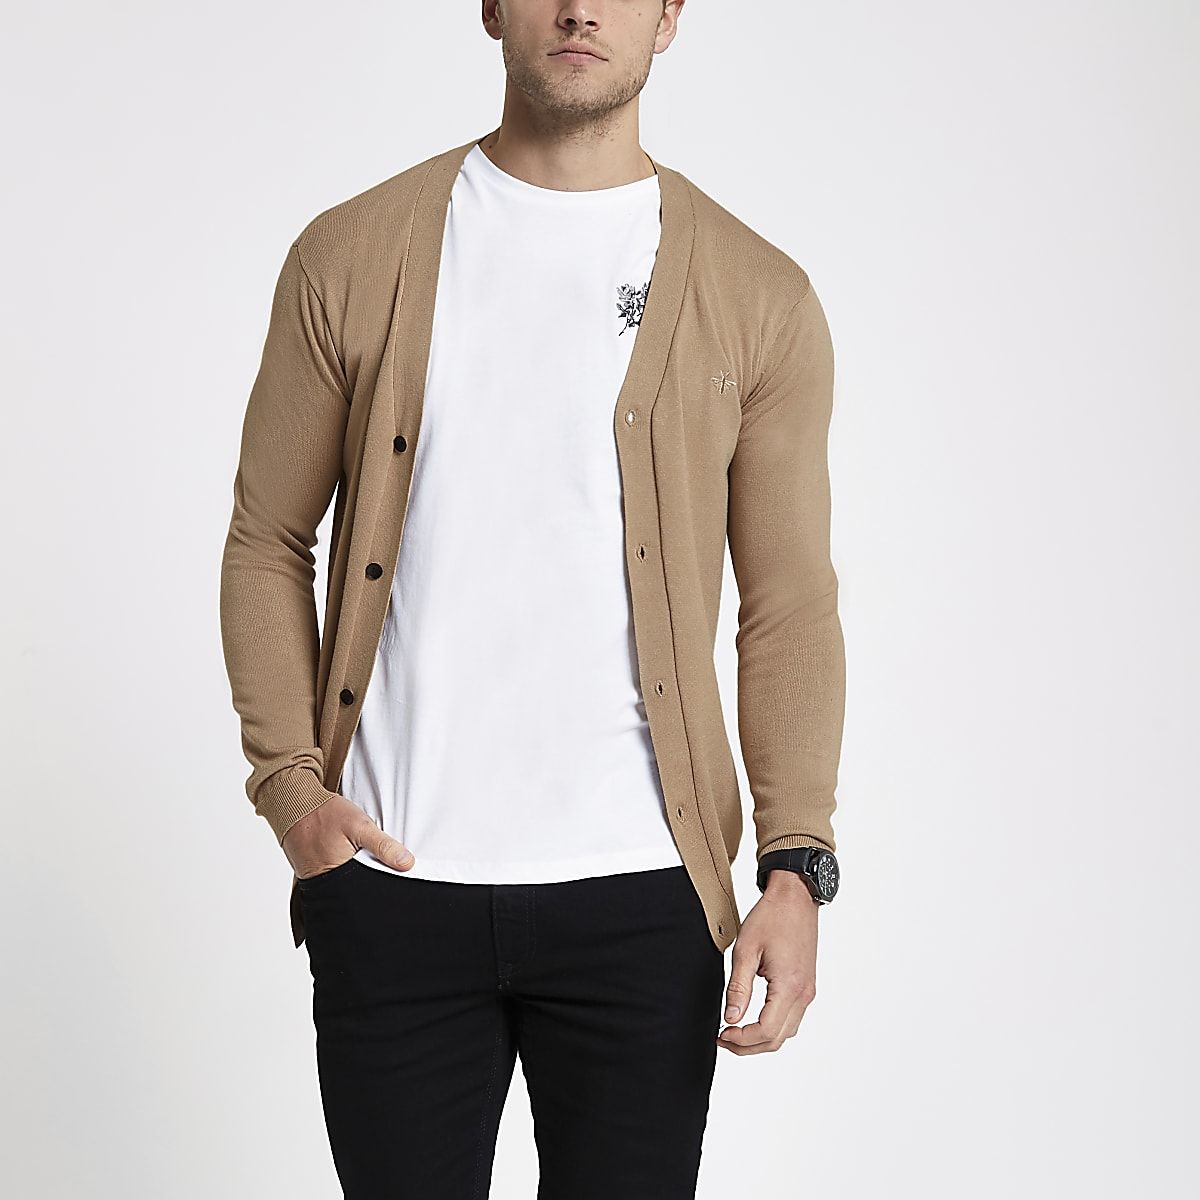 Brown V neck button-down cardigan